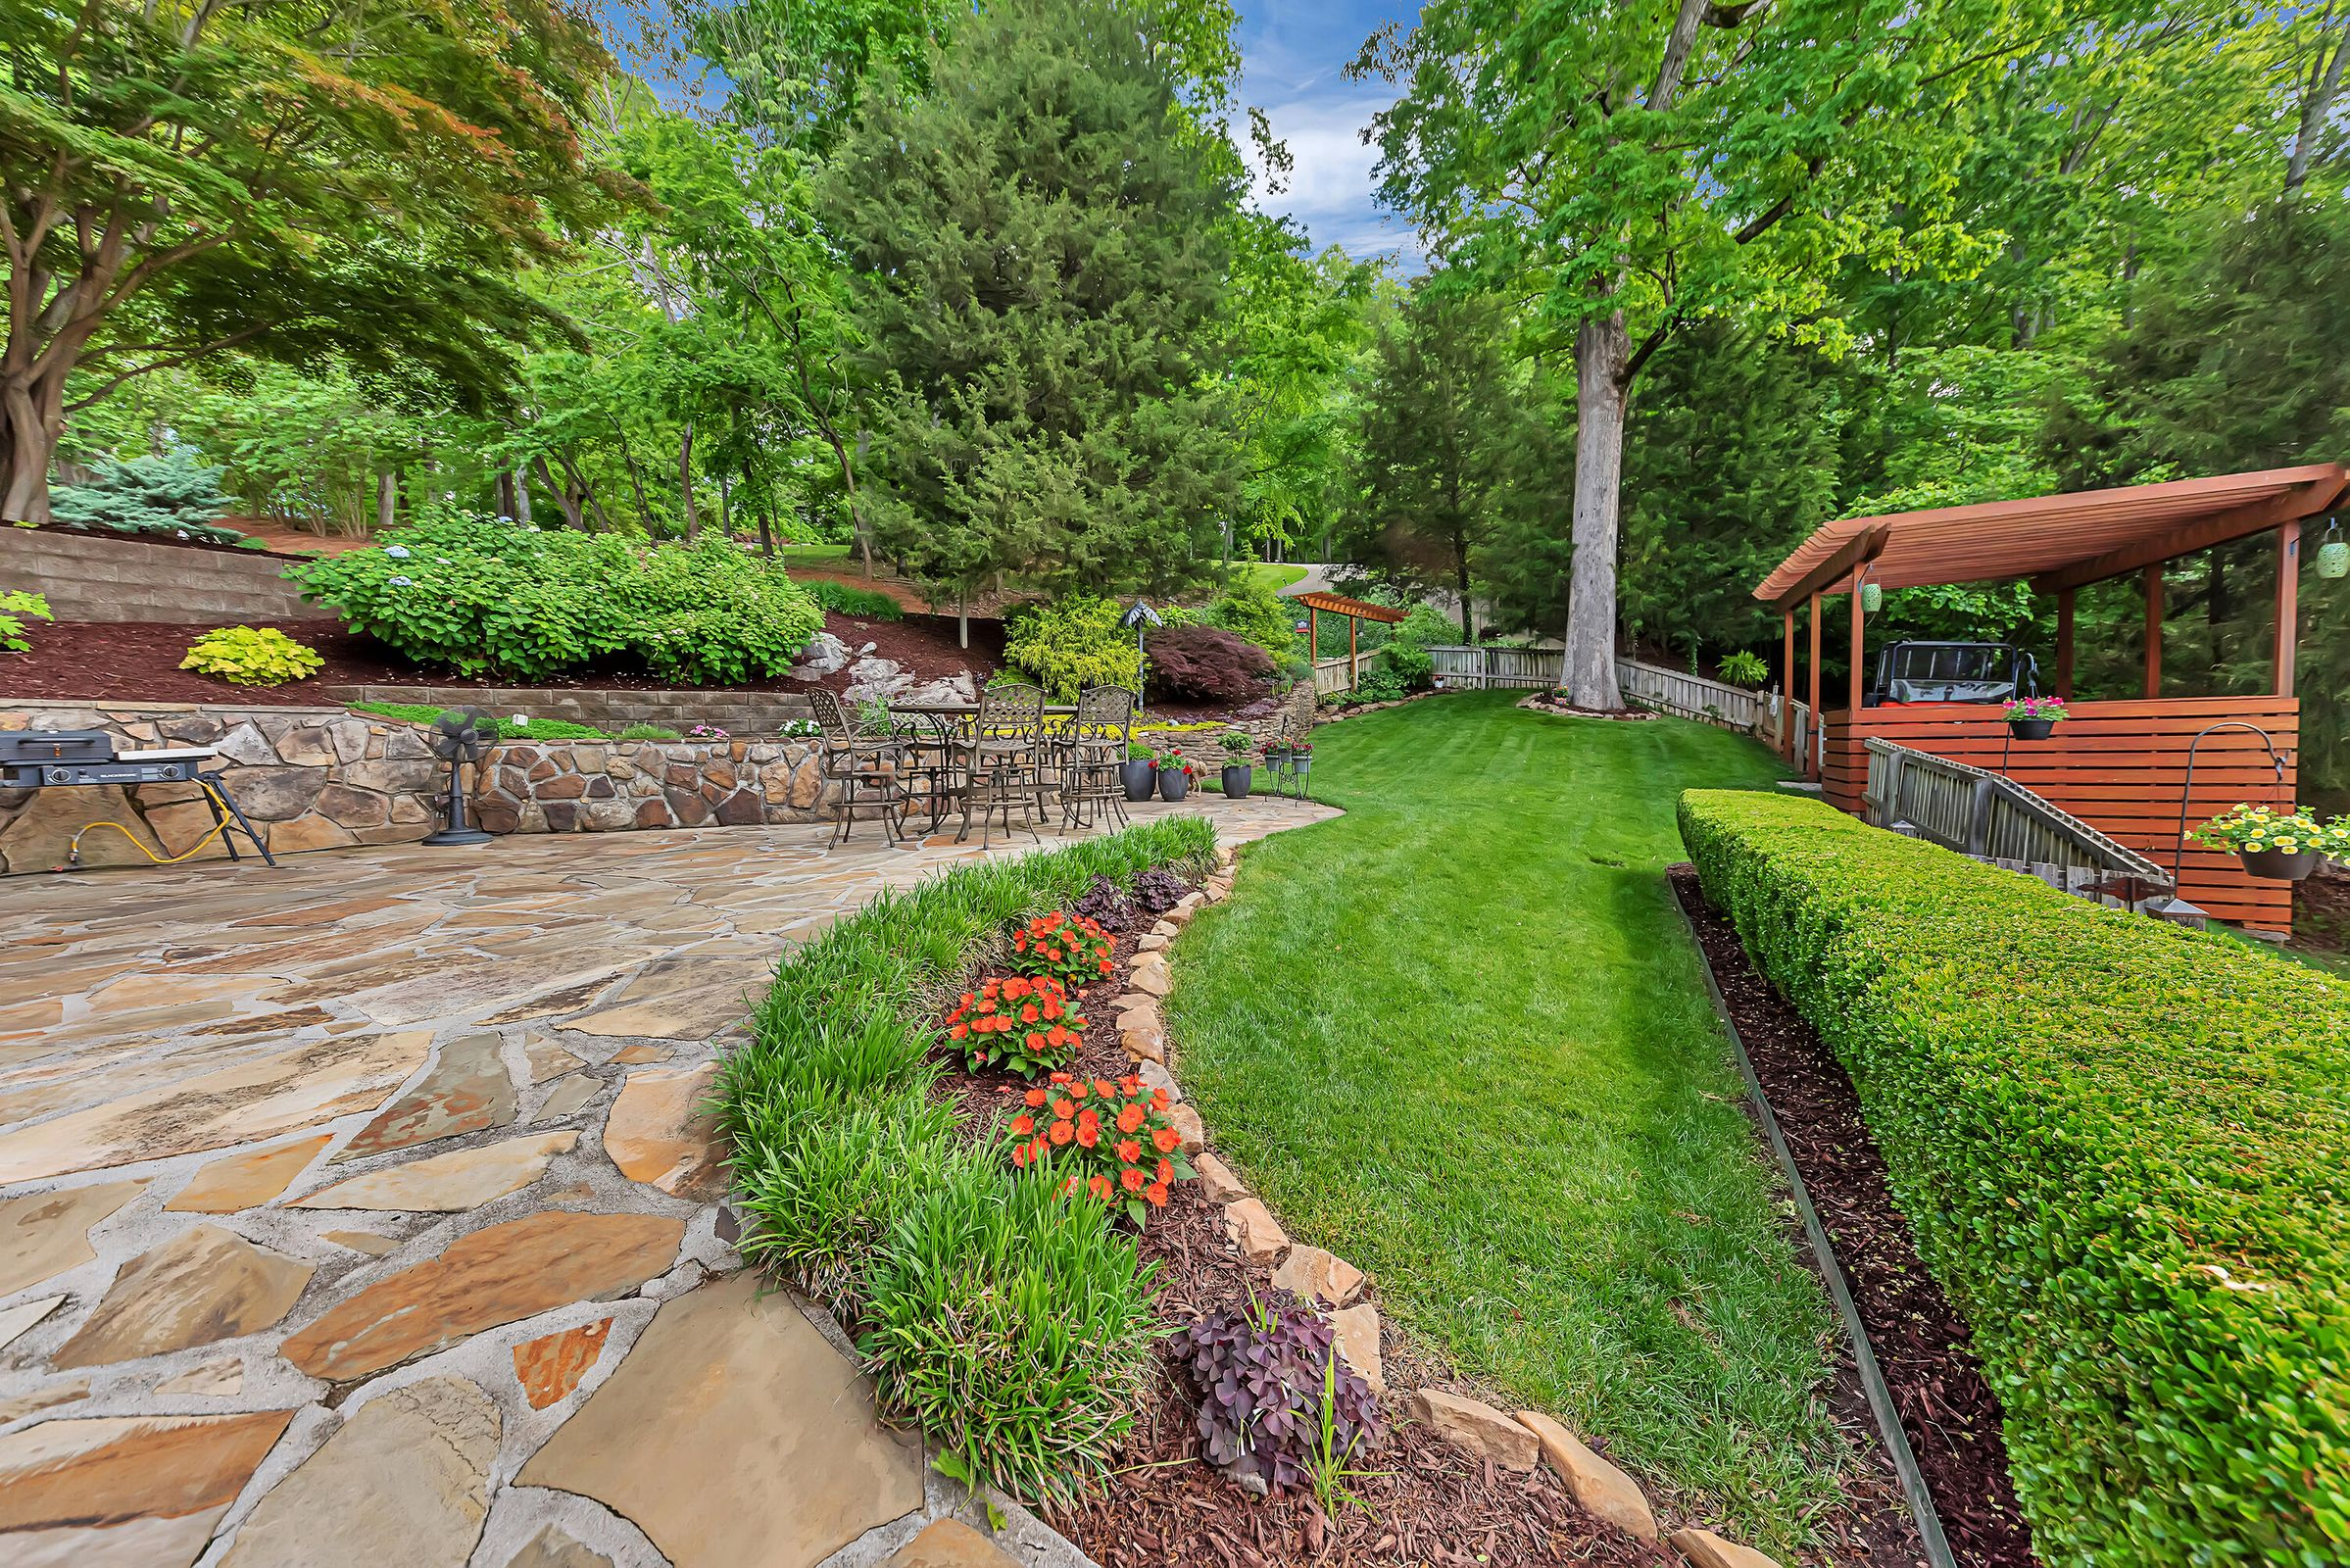 Yard with Mature Landscaping